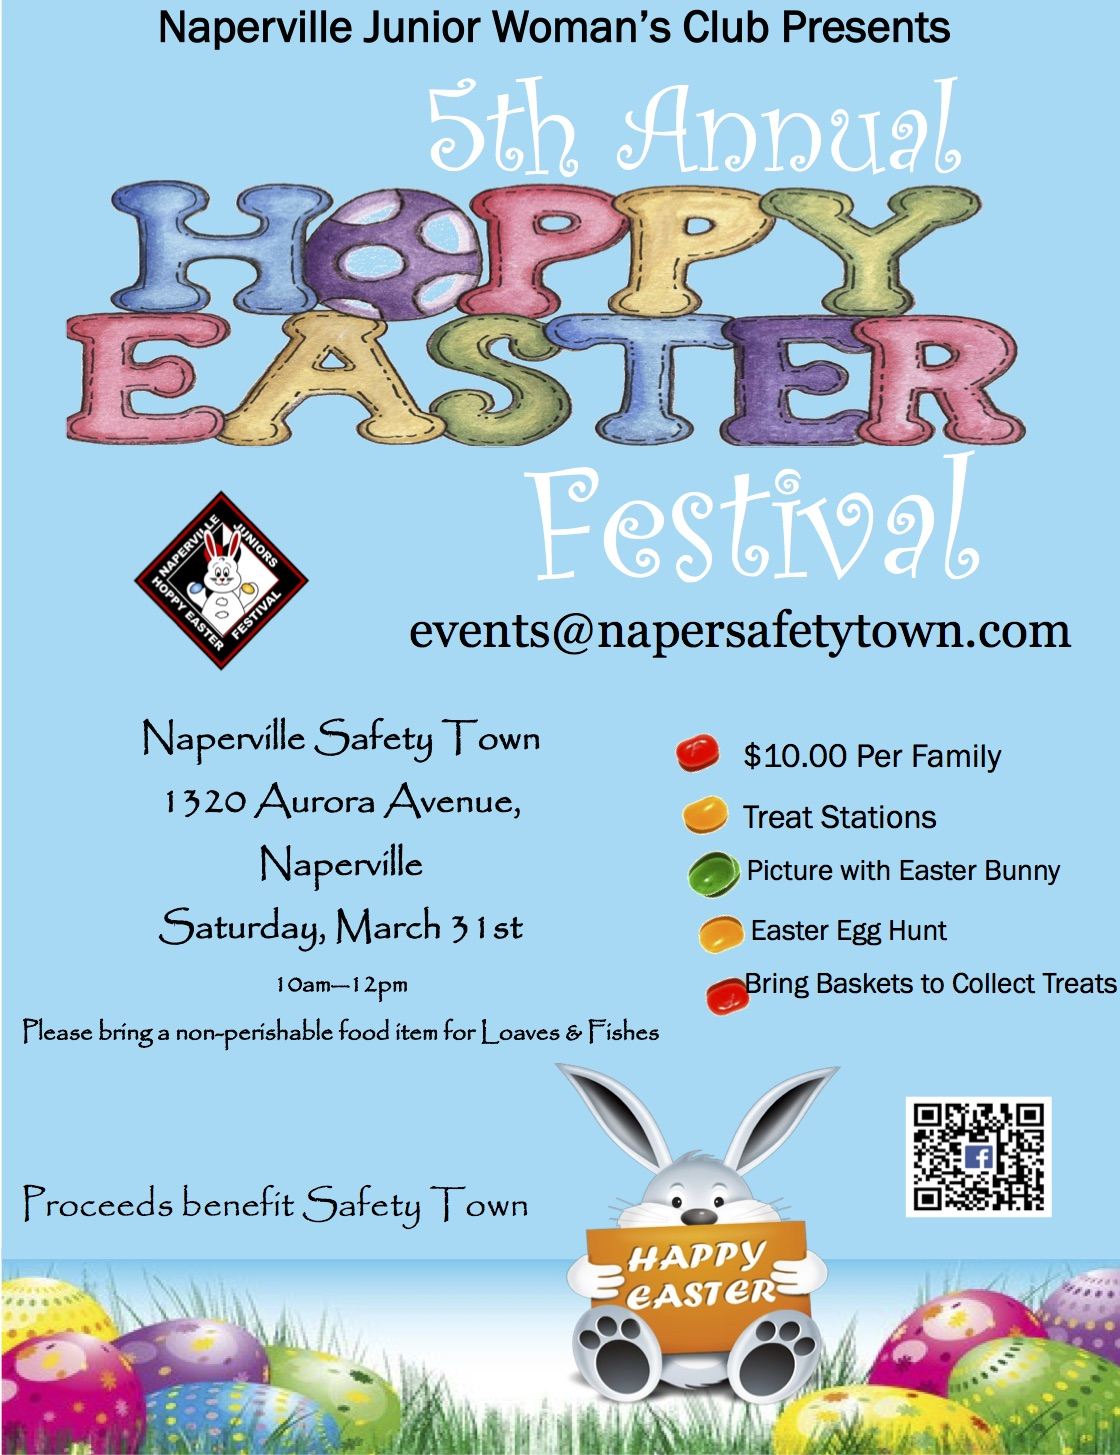 Naperville Junior Woman's Club Hoppy Easter Festival